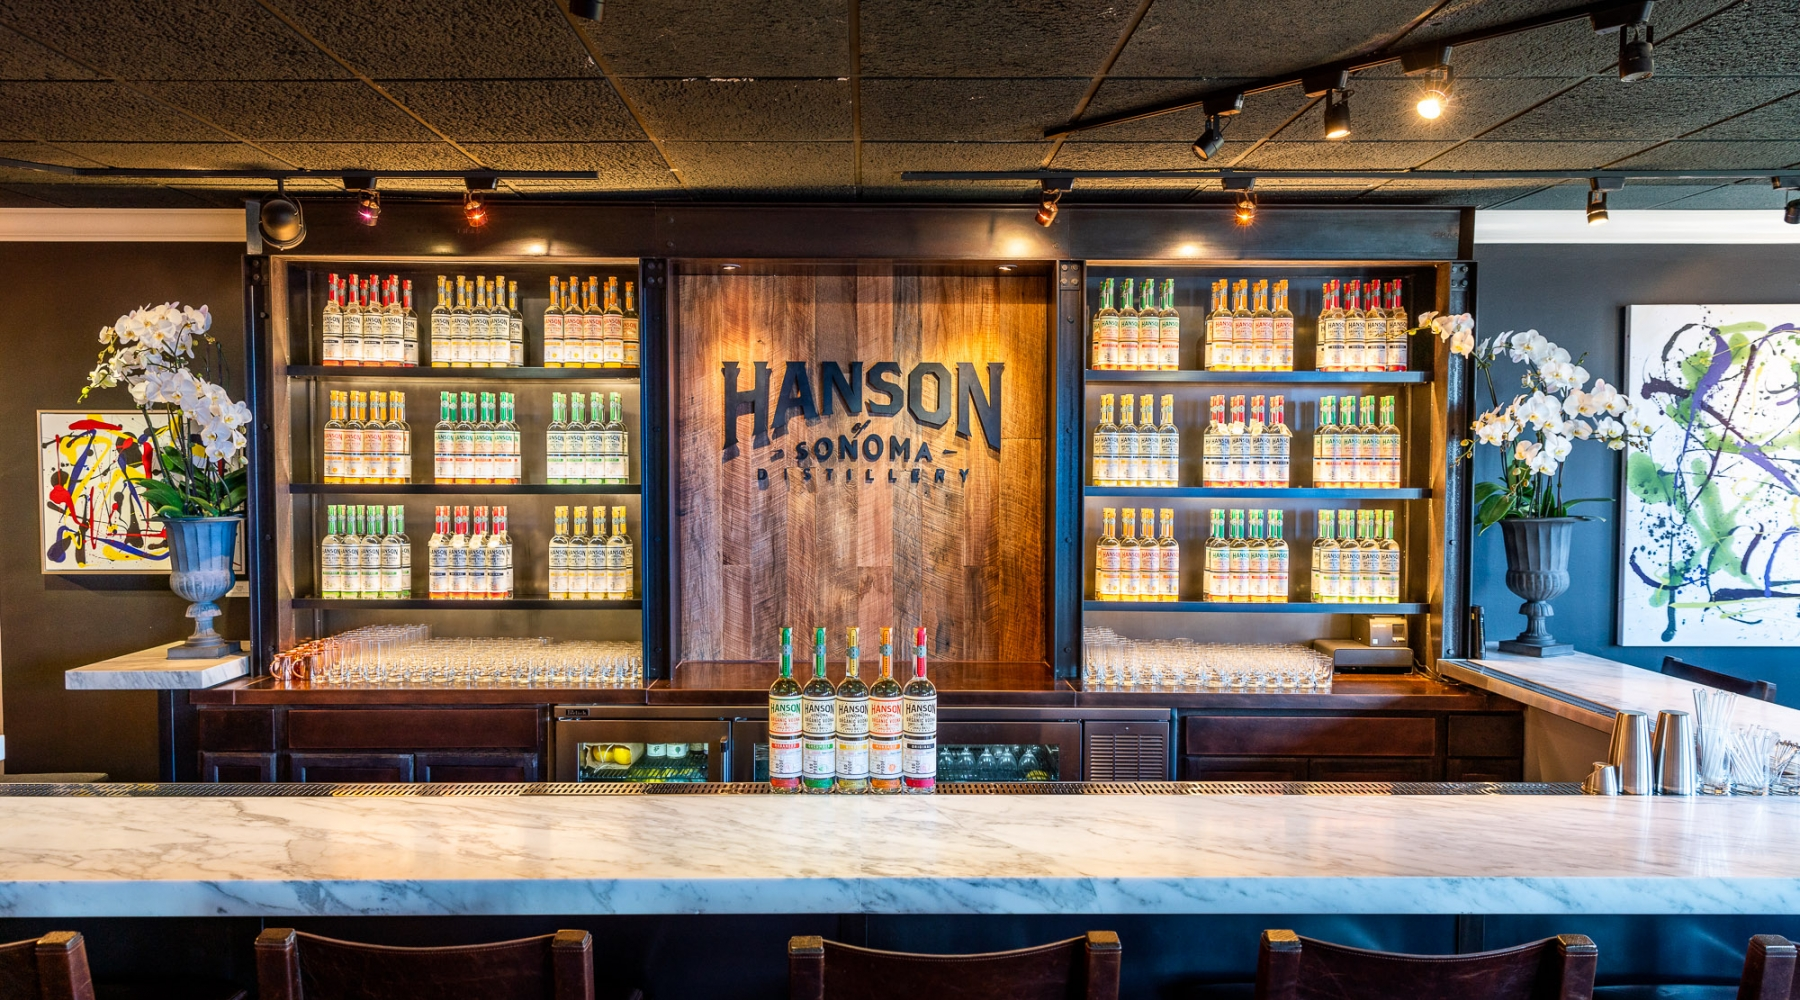 Please enjoy a tasting of Whiskey, Vodka or a cocktail in our beautiful tasting room on the Second floor of Hanson Gallery